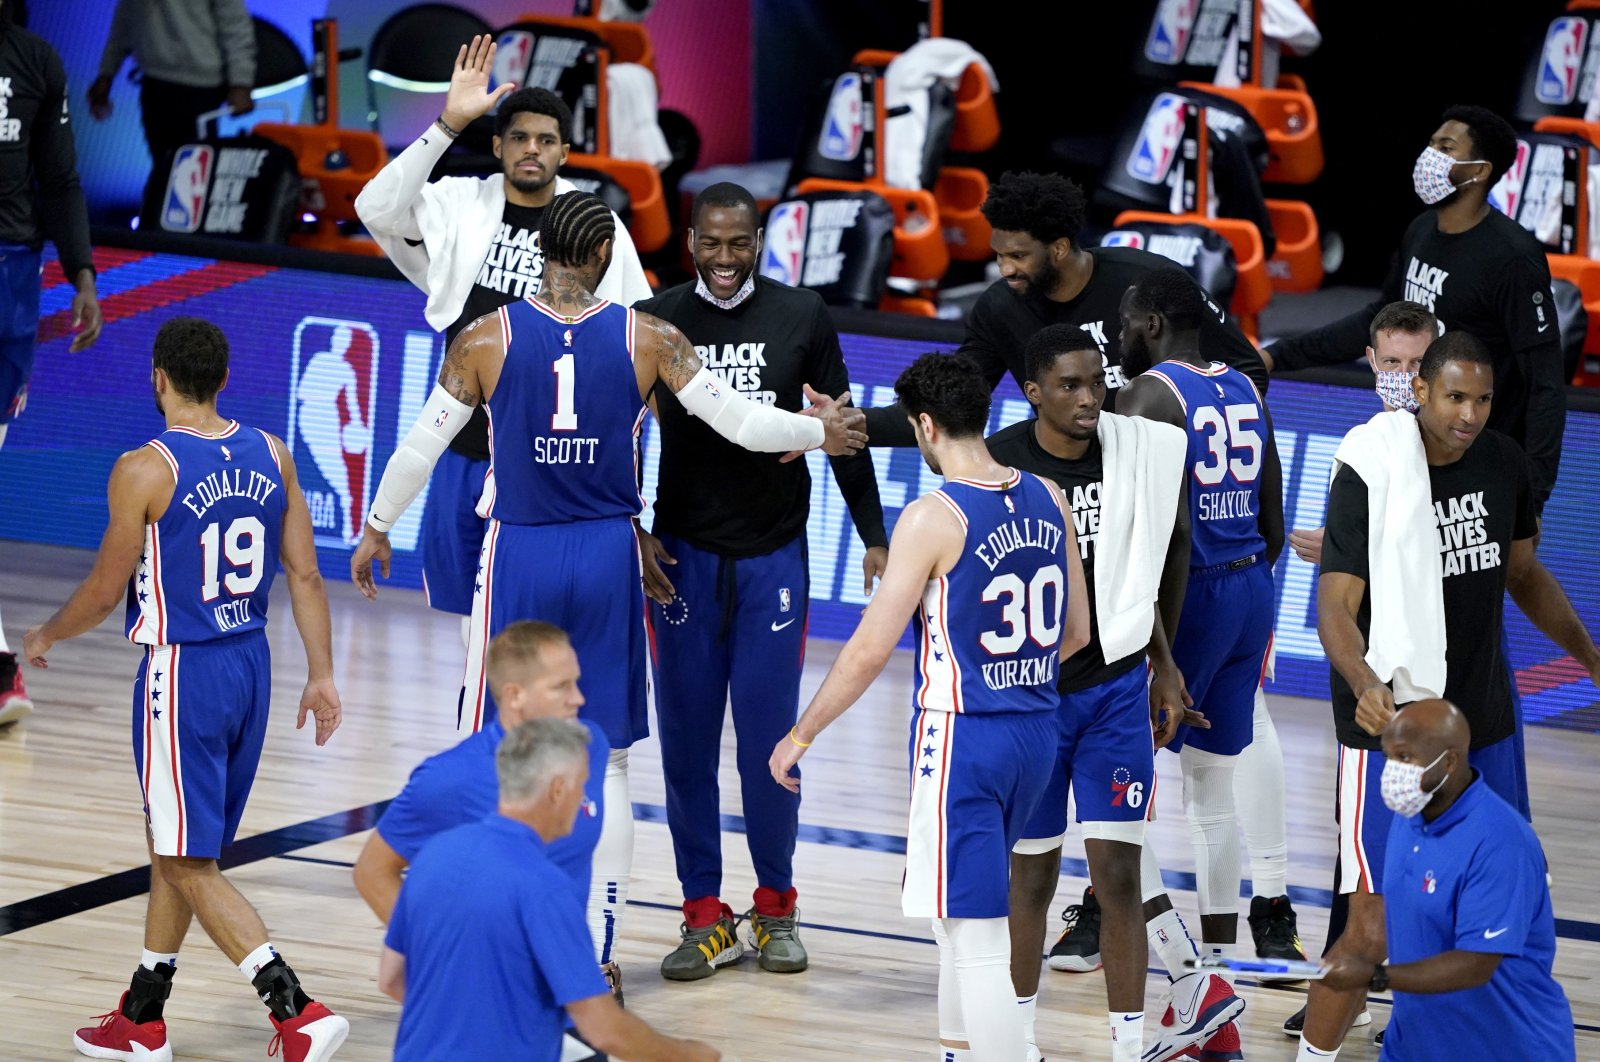 Furkan Korkmaz (30) and other Philadelphia 76ers players react during a timeout in the second half of an NBA basketball game against the Toronto Raptors in Lake Buena Vista, Florida on Aug. 12, 2020. (AP Photo)